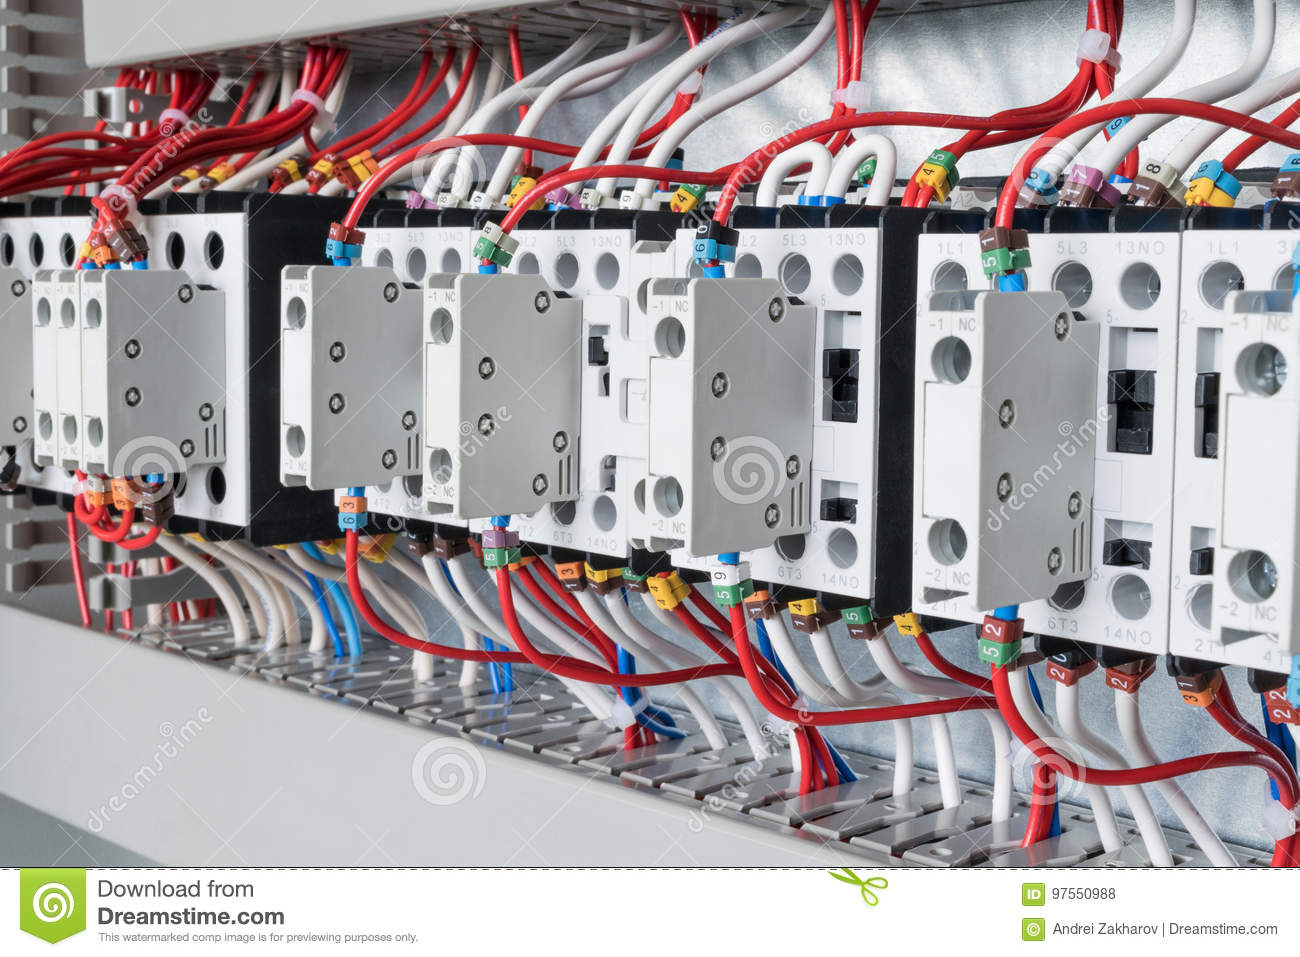 Several Contactors Arranged In A Row An Electrical Closet Stock Control Wiring Numbering System The Connected Wire Number Coded With Front Auxiliary Contacts Wires Go Into Perforated Cable Channels